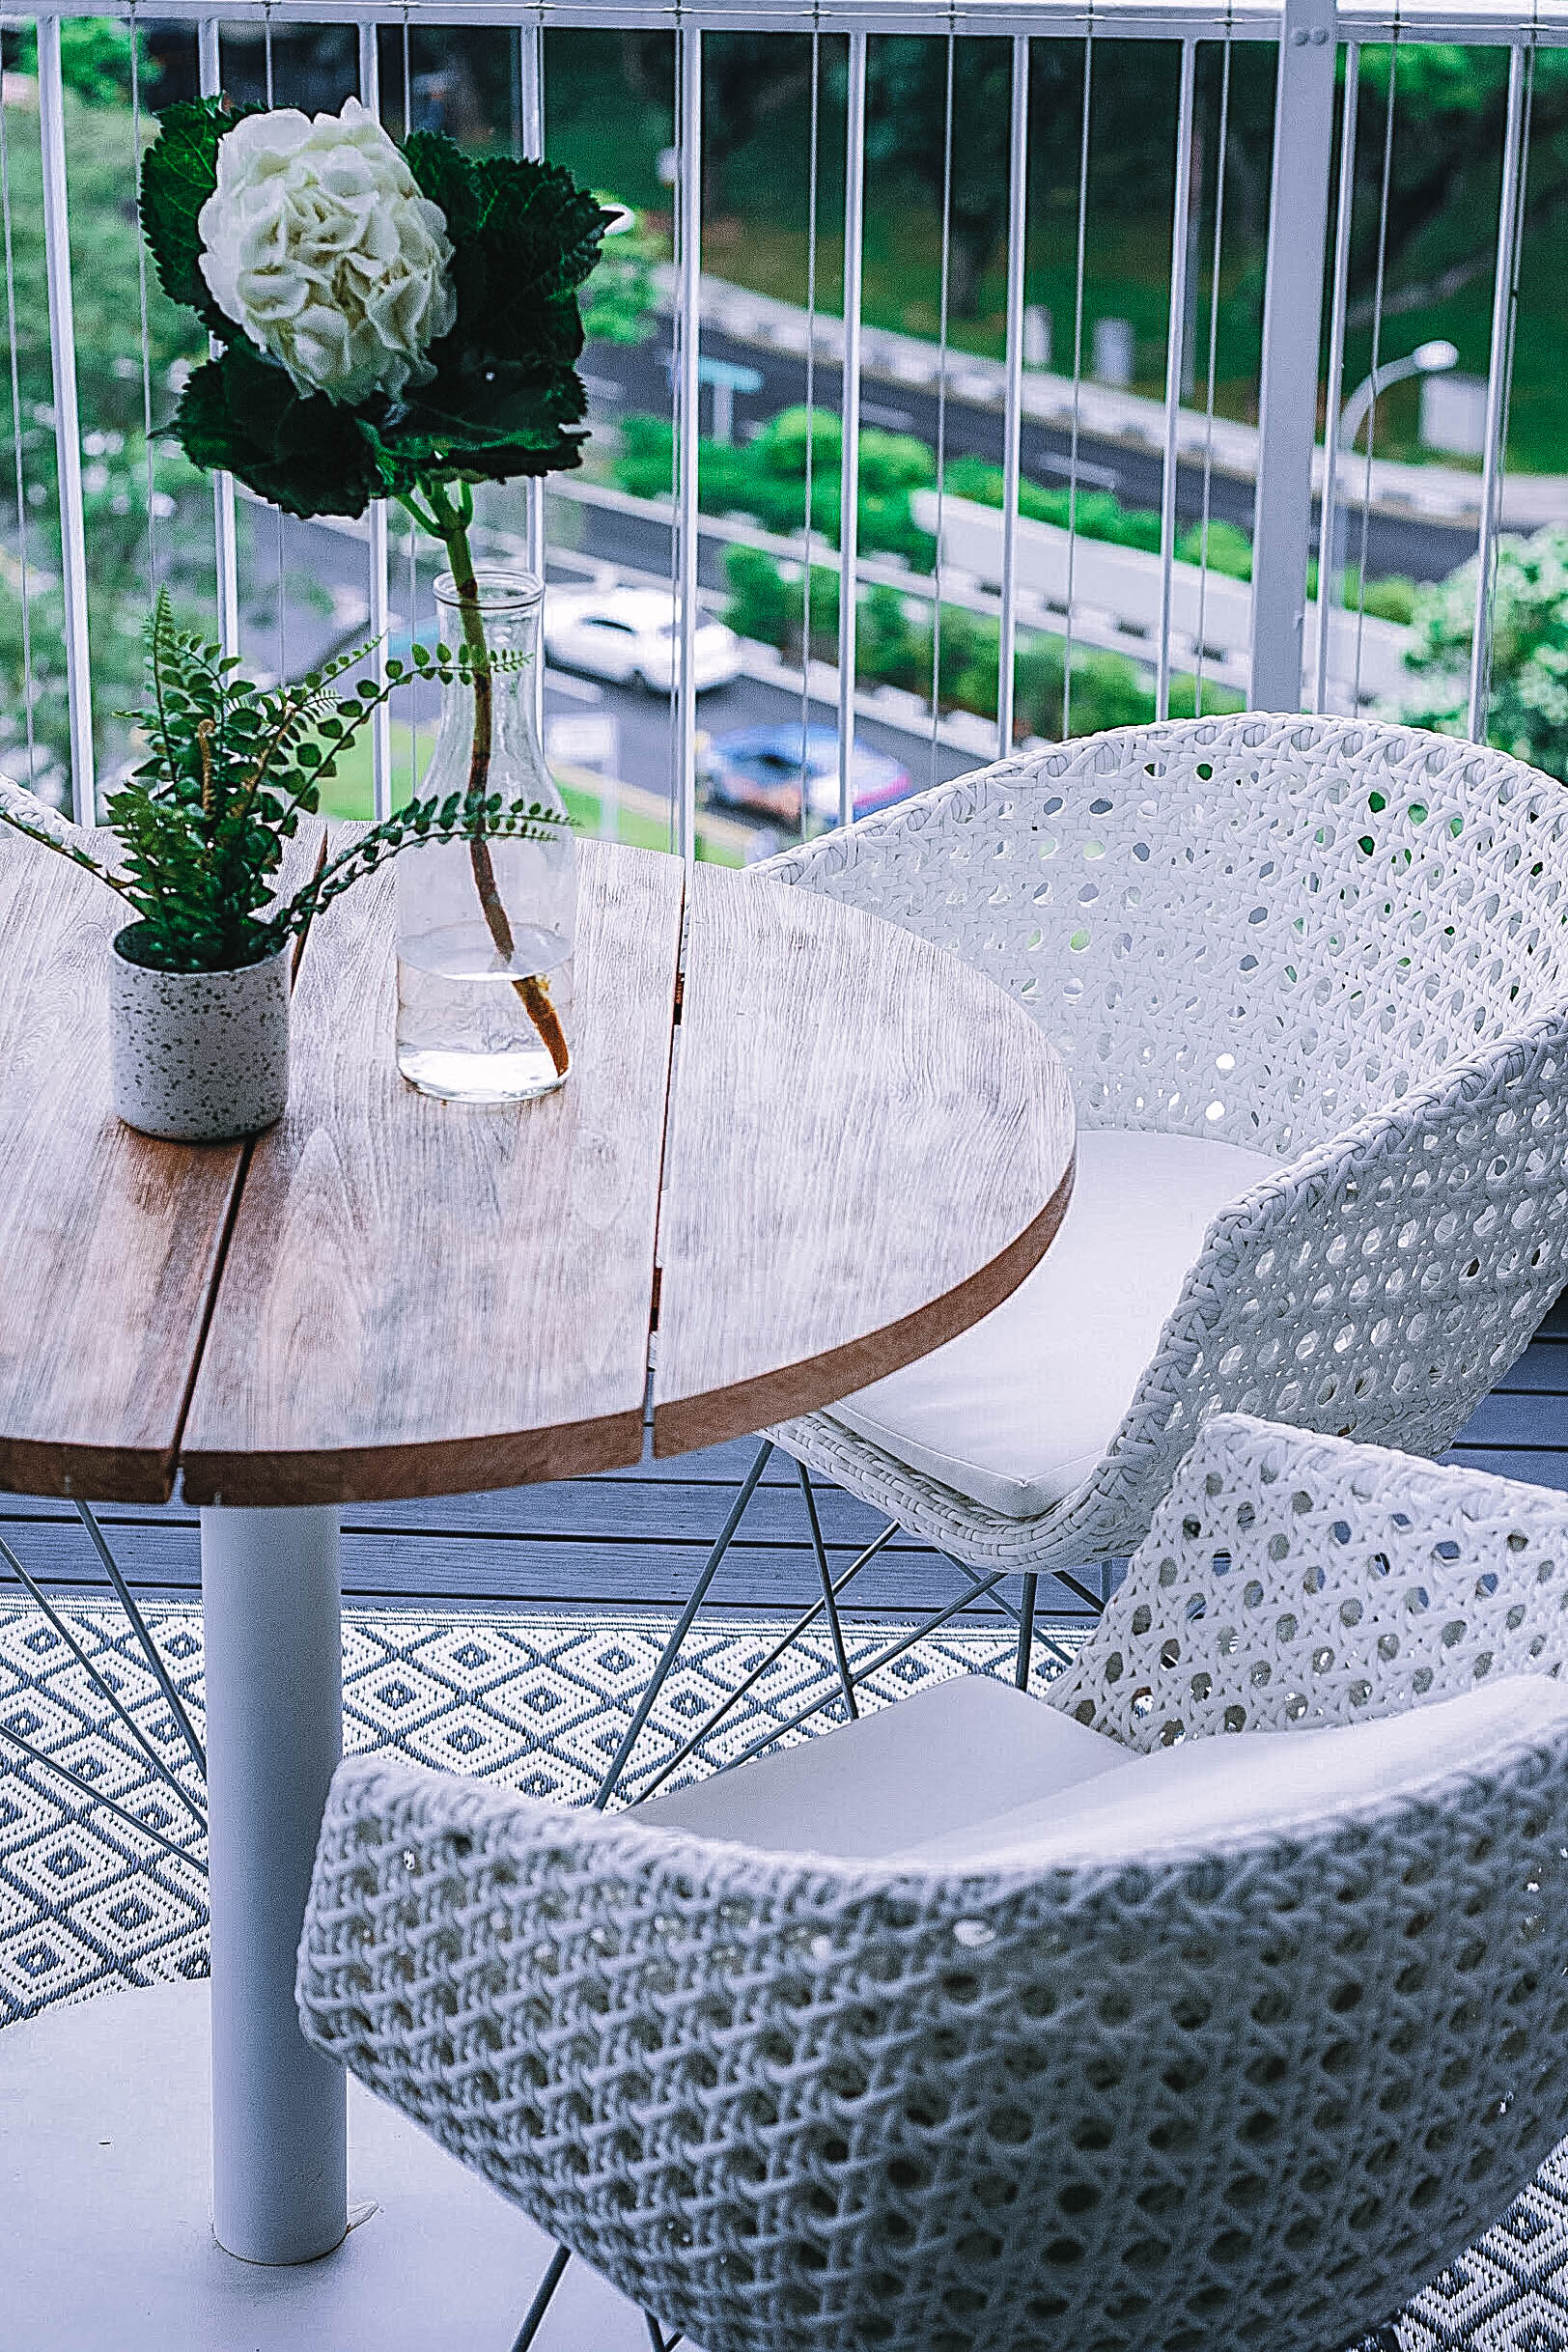 Outdoor Balcony Patio Round Table Green Plants